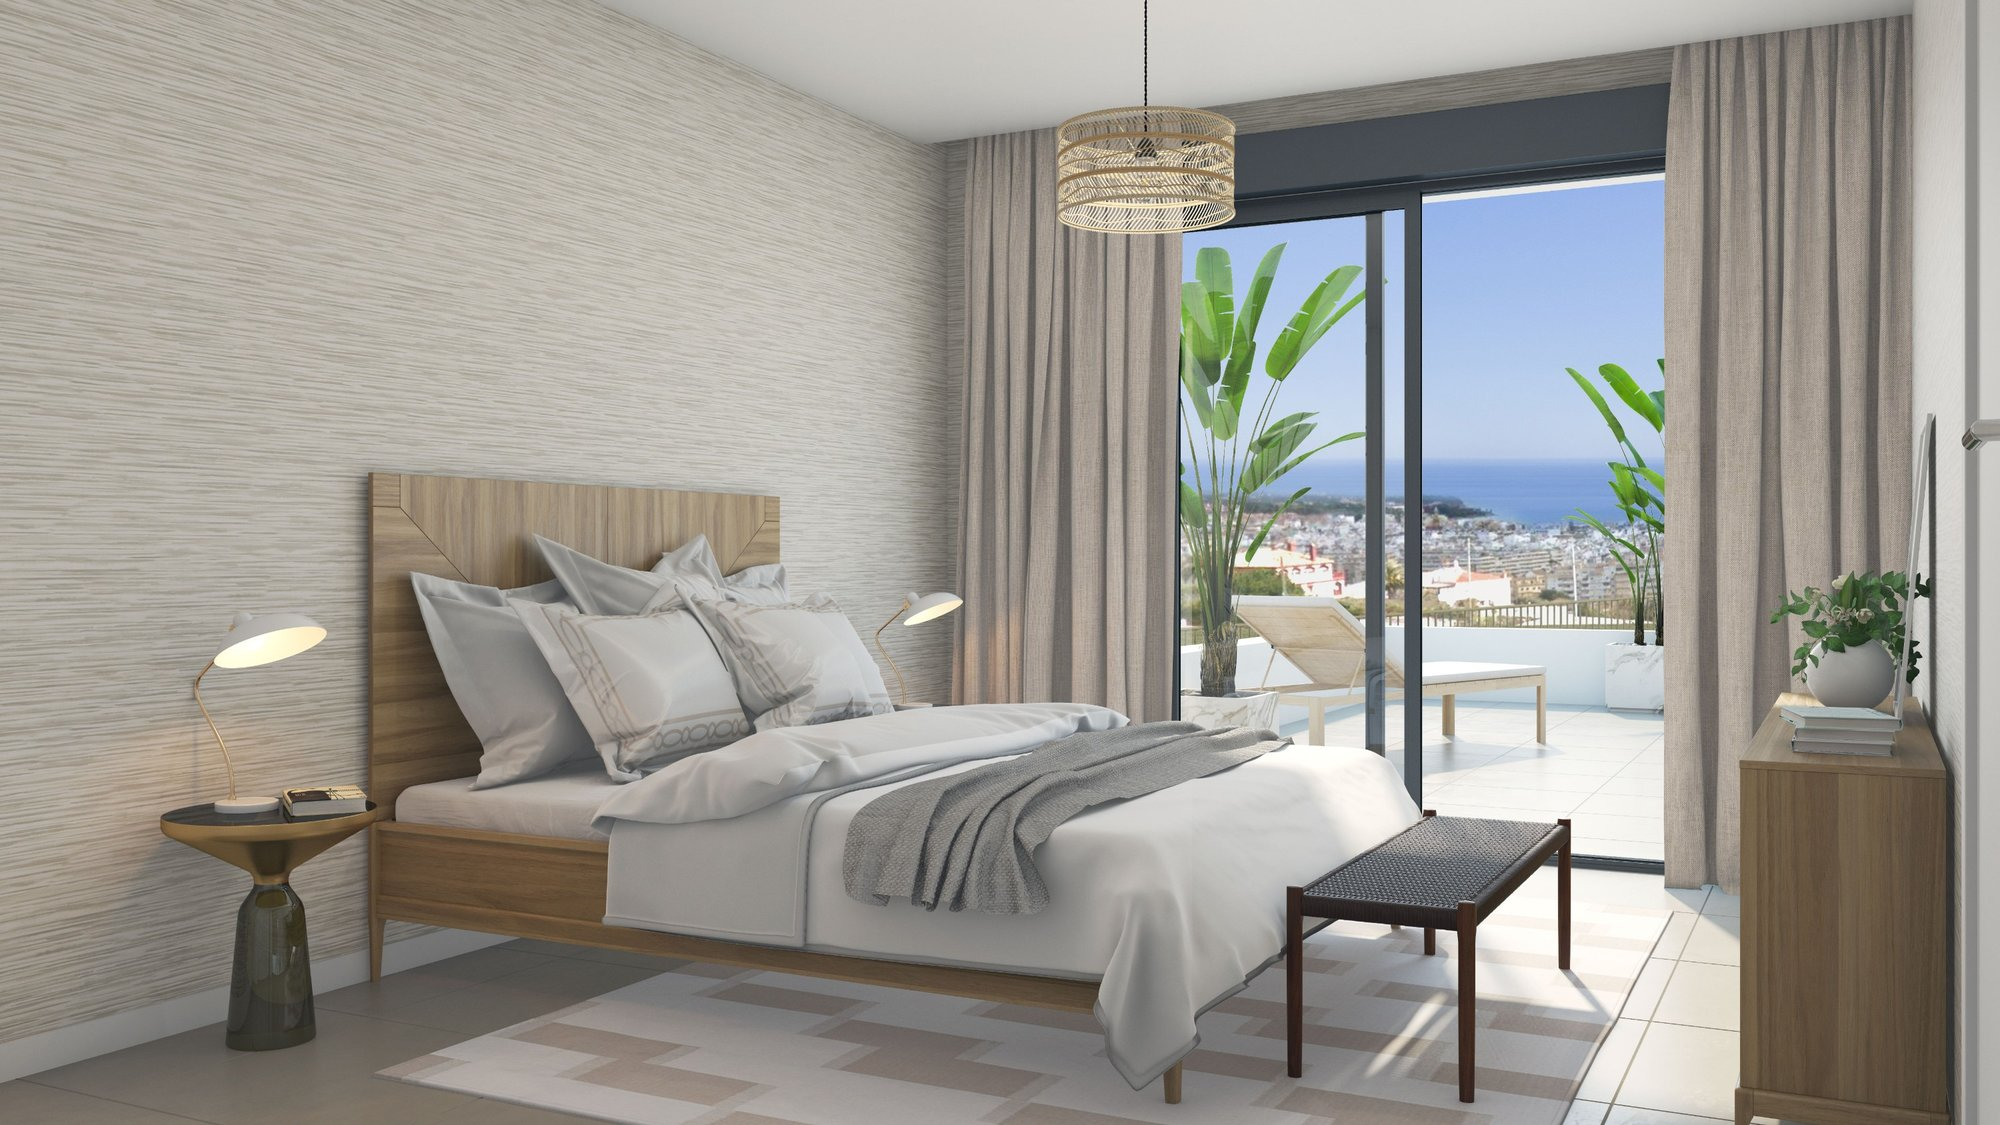 3 bedroom 2 bathroom apartment for sale in estepona mas - 3 bedroom and 2 bathrooms apartment ...